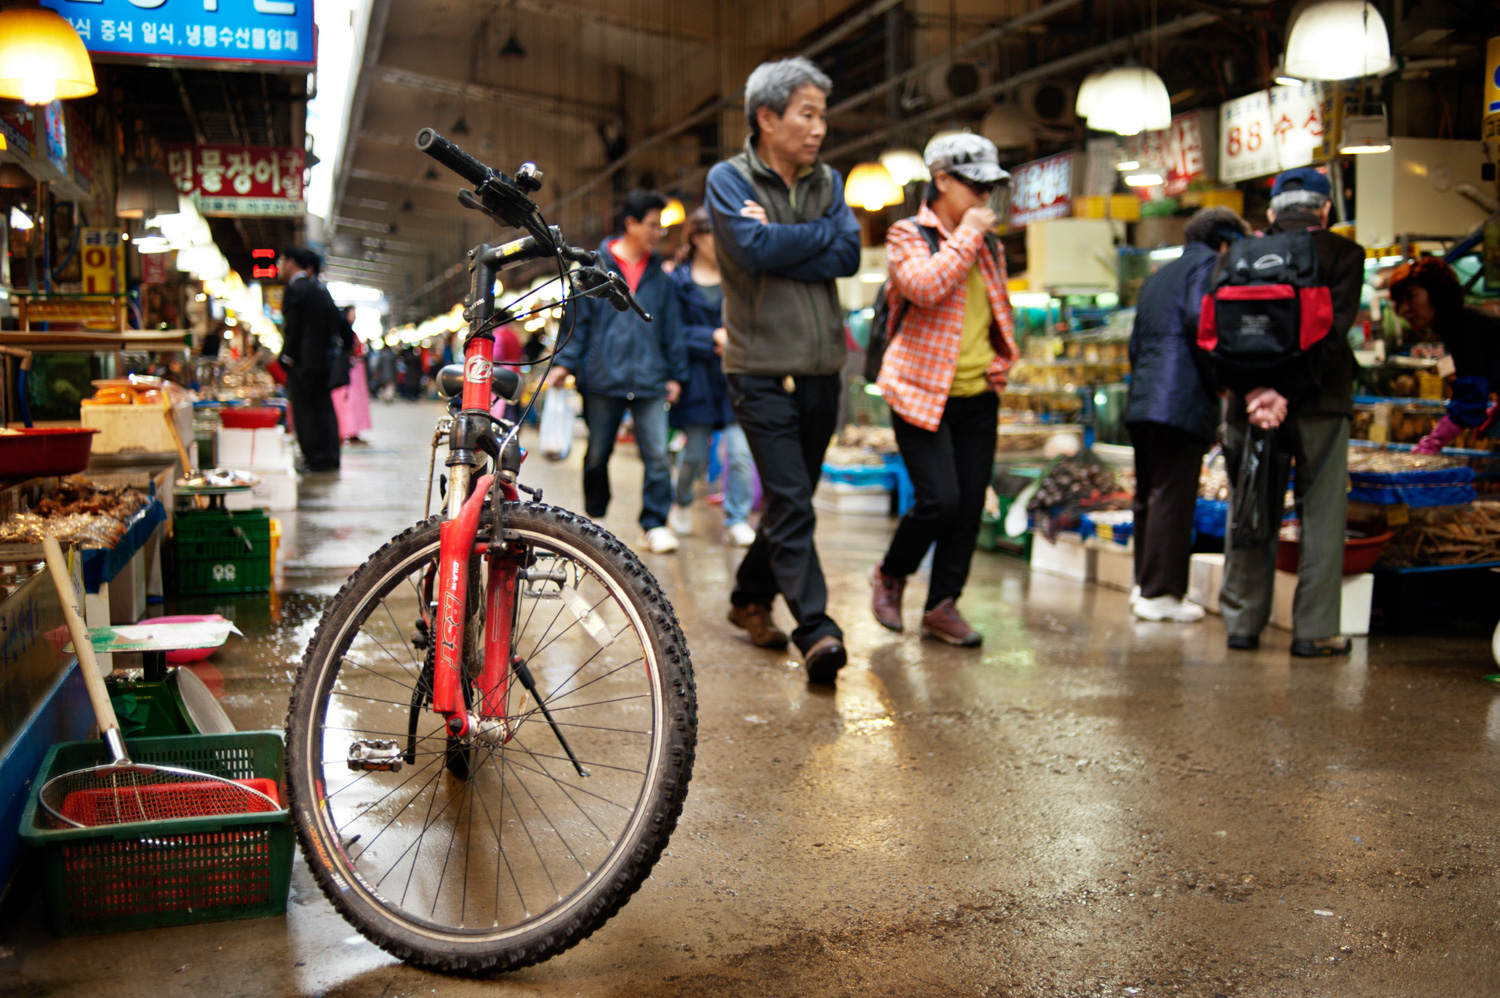 Bike at a wet market in Korea